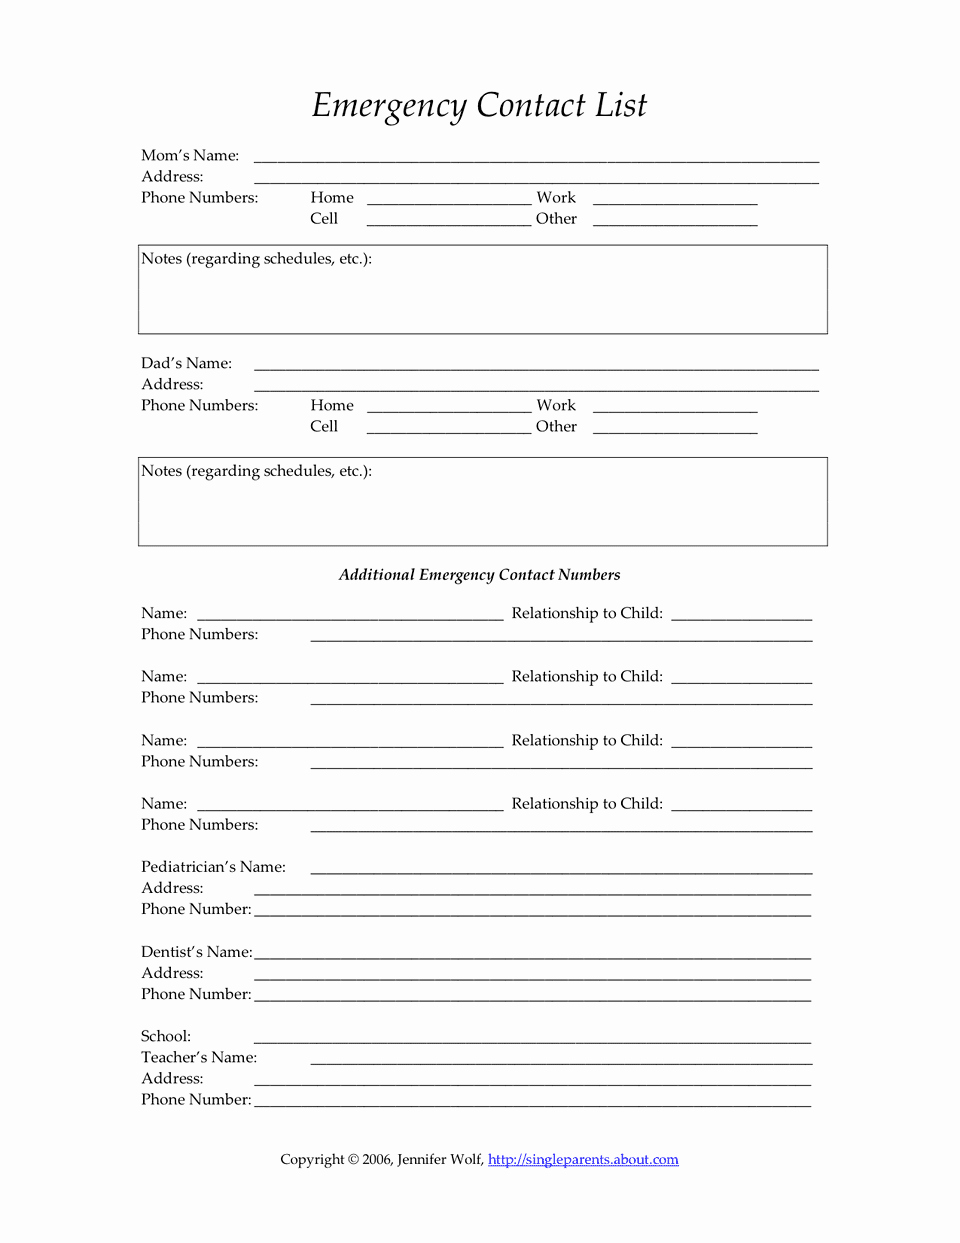 Emergency Contact form Template Free Inspirational form Templates Child Care Emergency Contact form Child